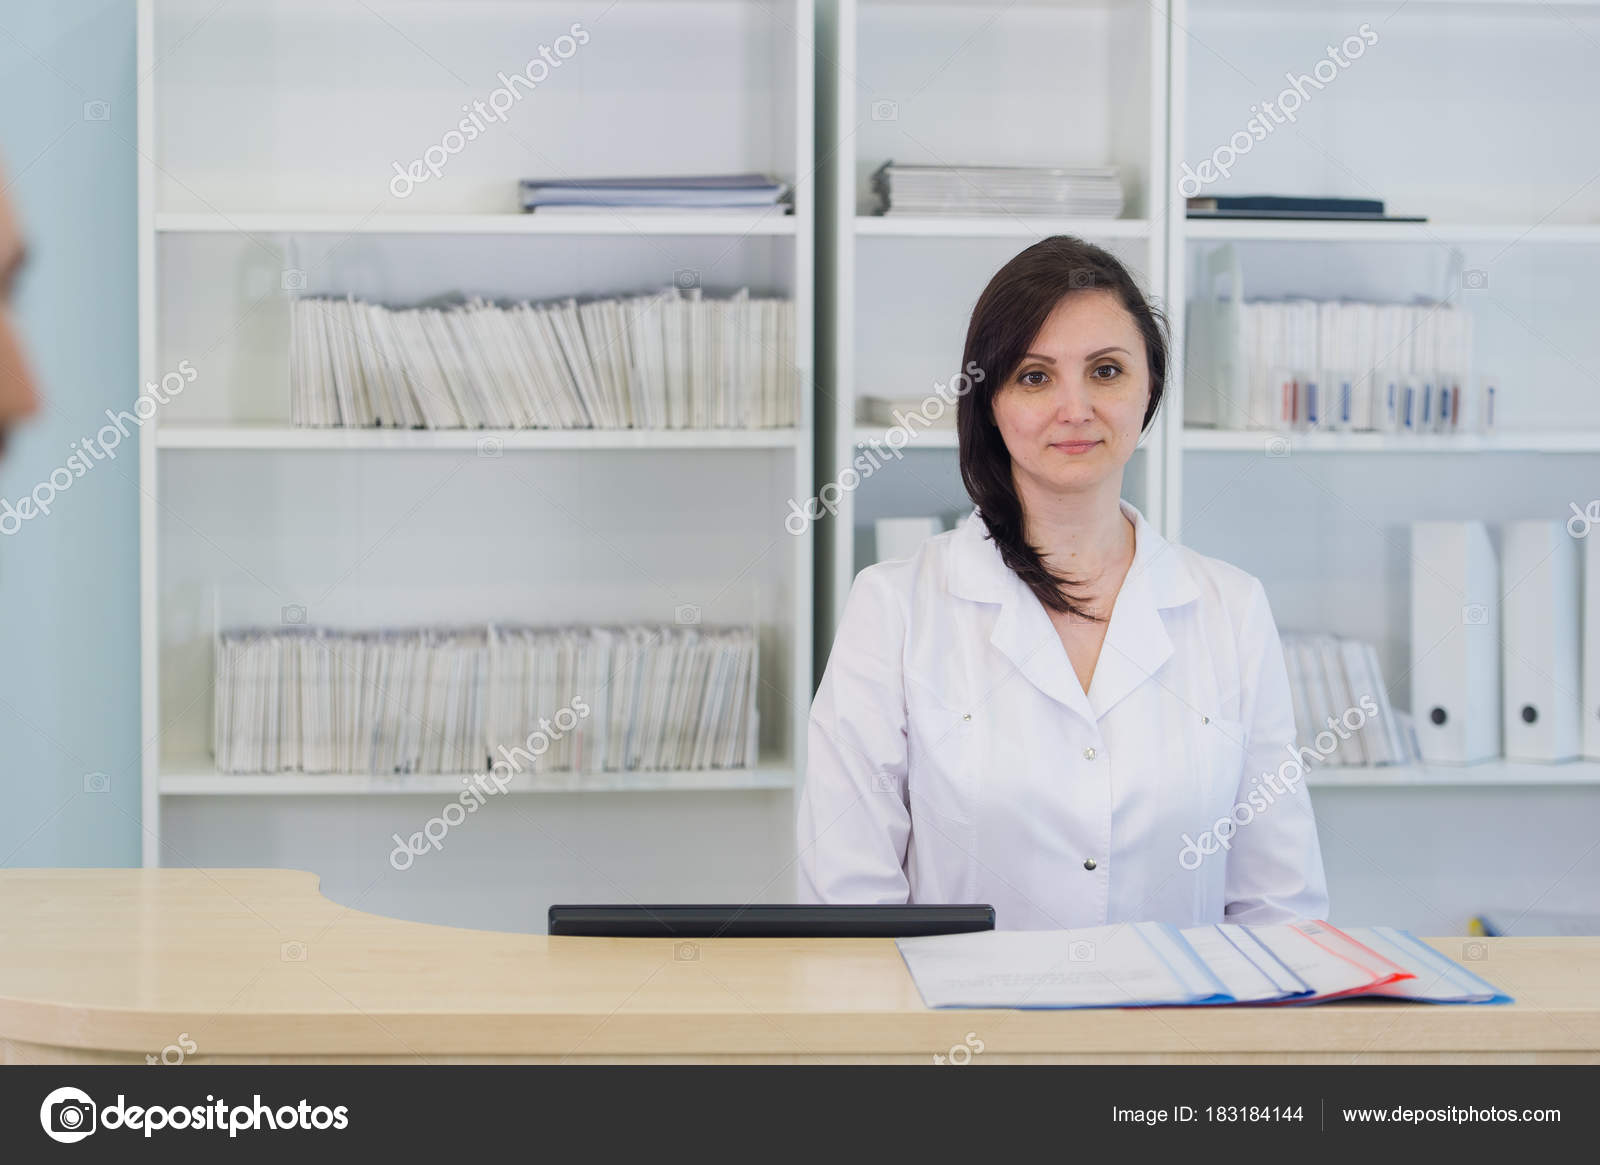 hallway the emergency room and outpatient hospital and woman receptionist stock photo